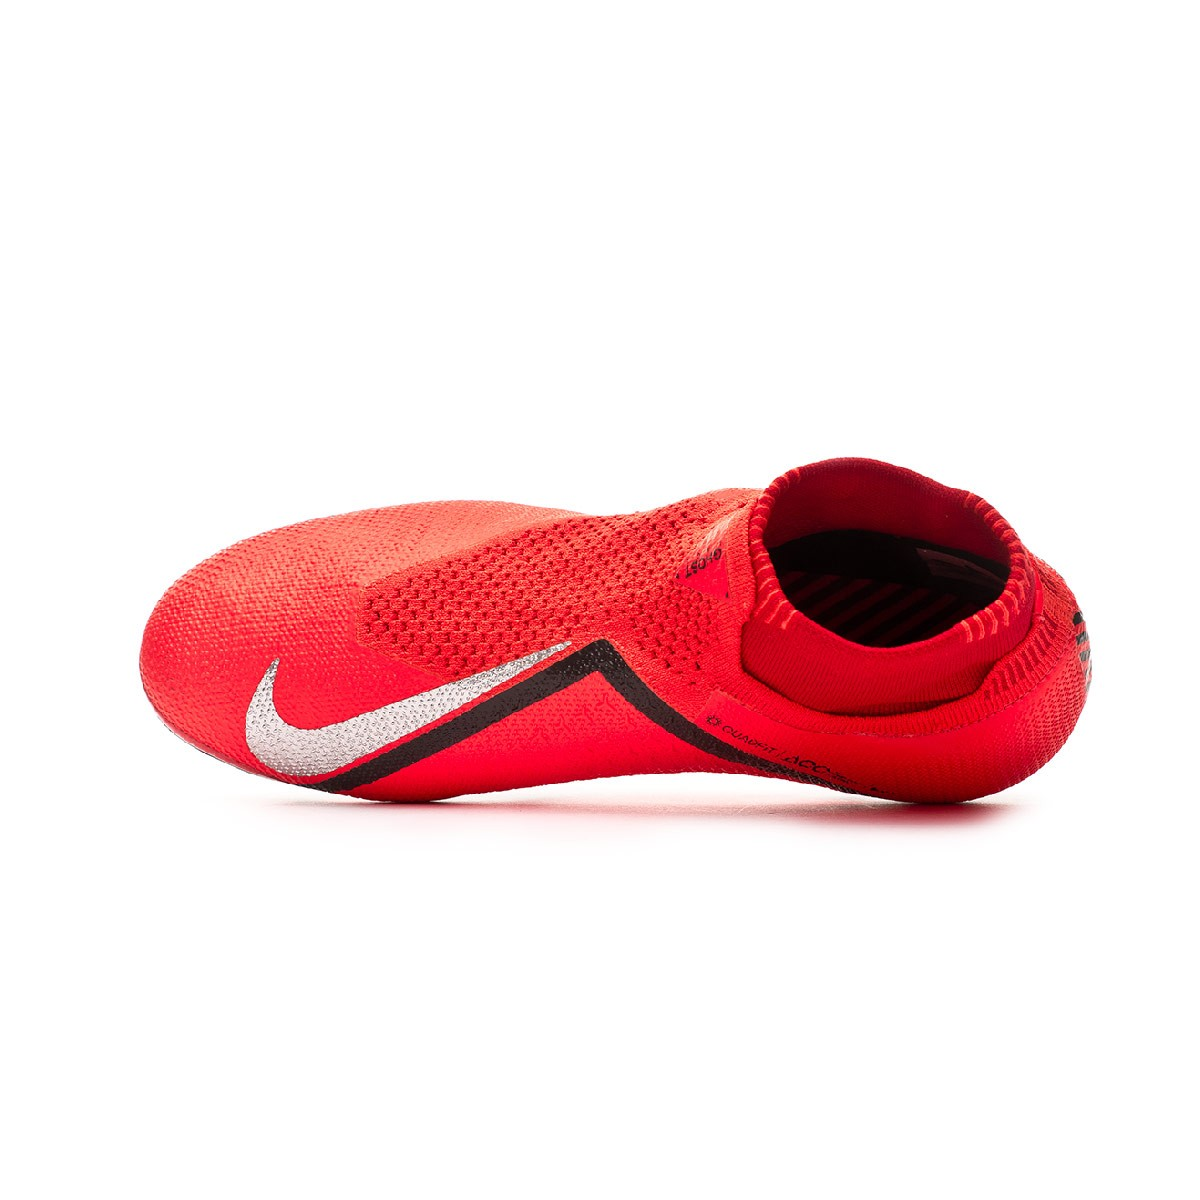 19f2361a791a8 Chuteira Nike Phantom Vision Elite DF FG Bright crimson-Metallic silver -  Loja de futebol Fútbol Emotion